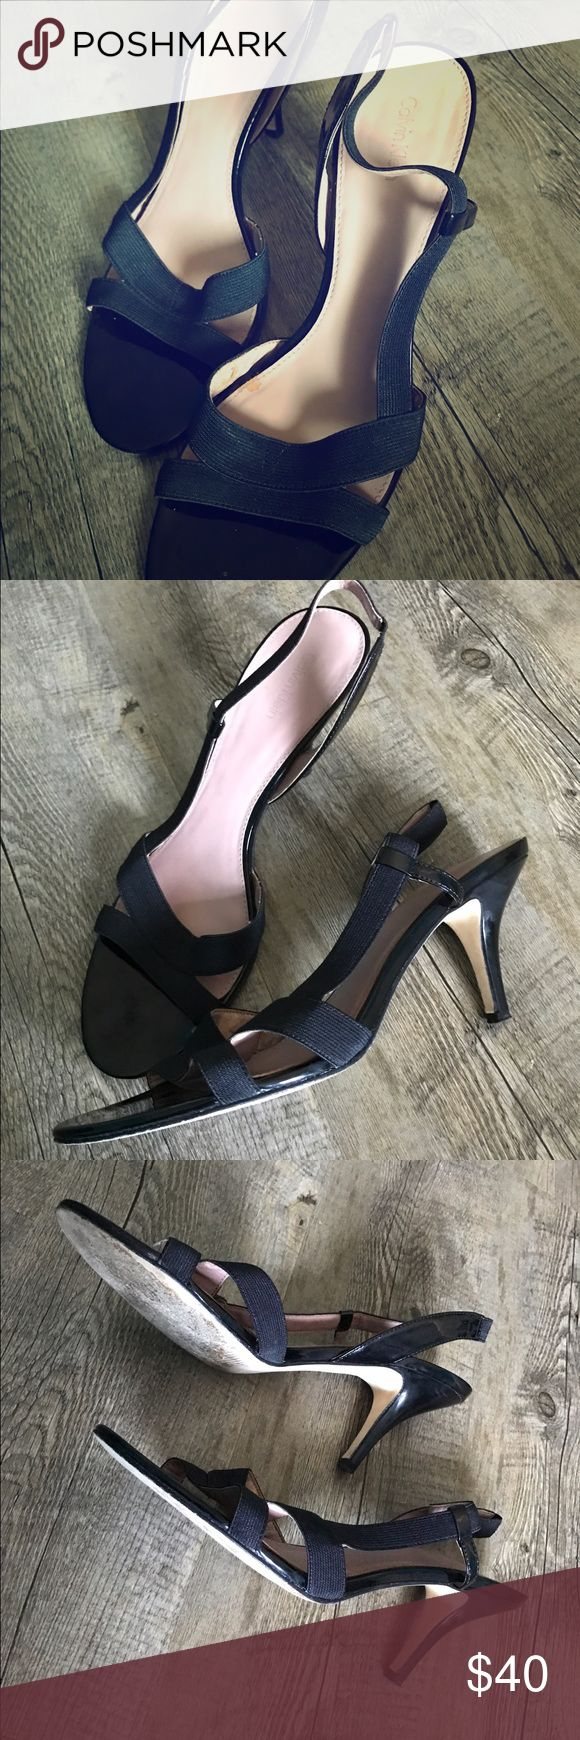 Calvin Klein black strappy sandal heels These are a pair of black elastic and patent leather strappy evening sandals with a small heel. Light wear is visible, though only worn 2x for 2 weddings. You can wear them for hours! Calvin Klein Shoes Sandals